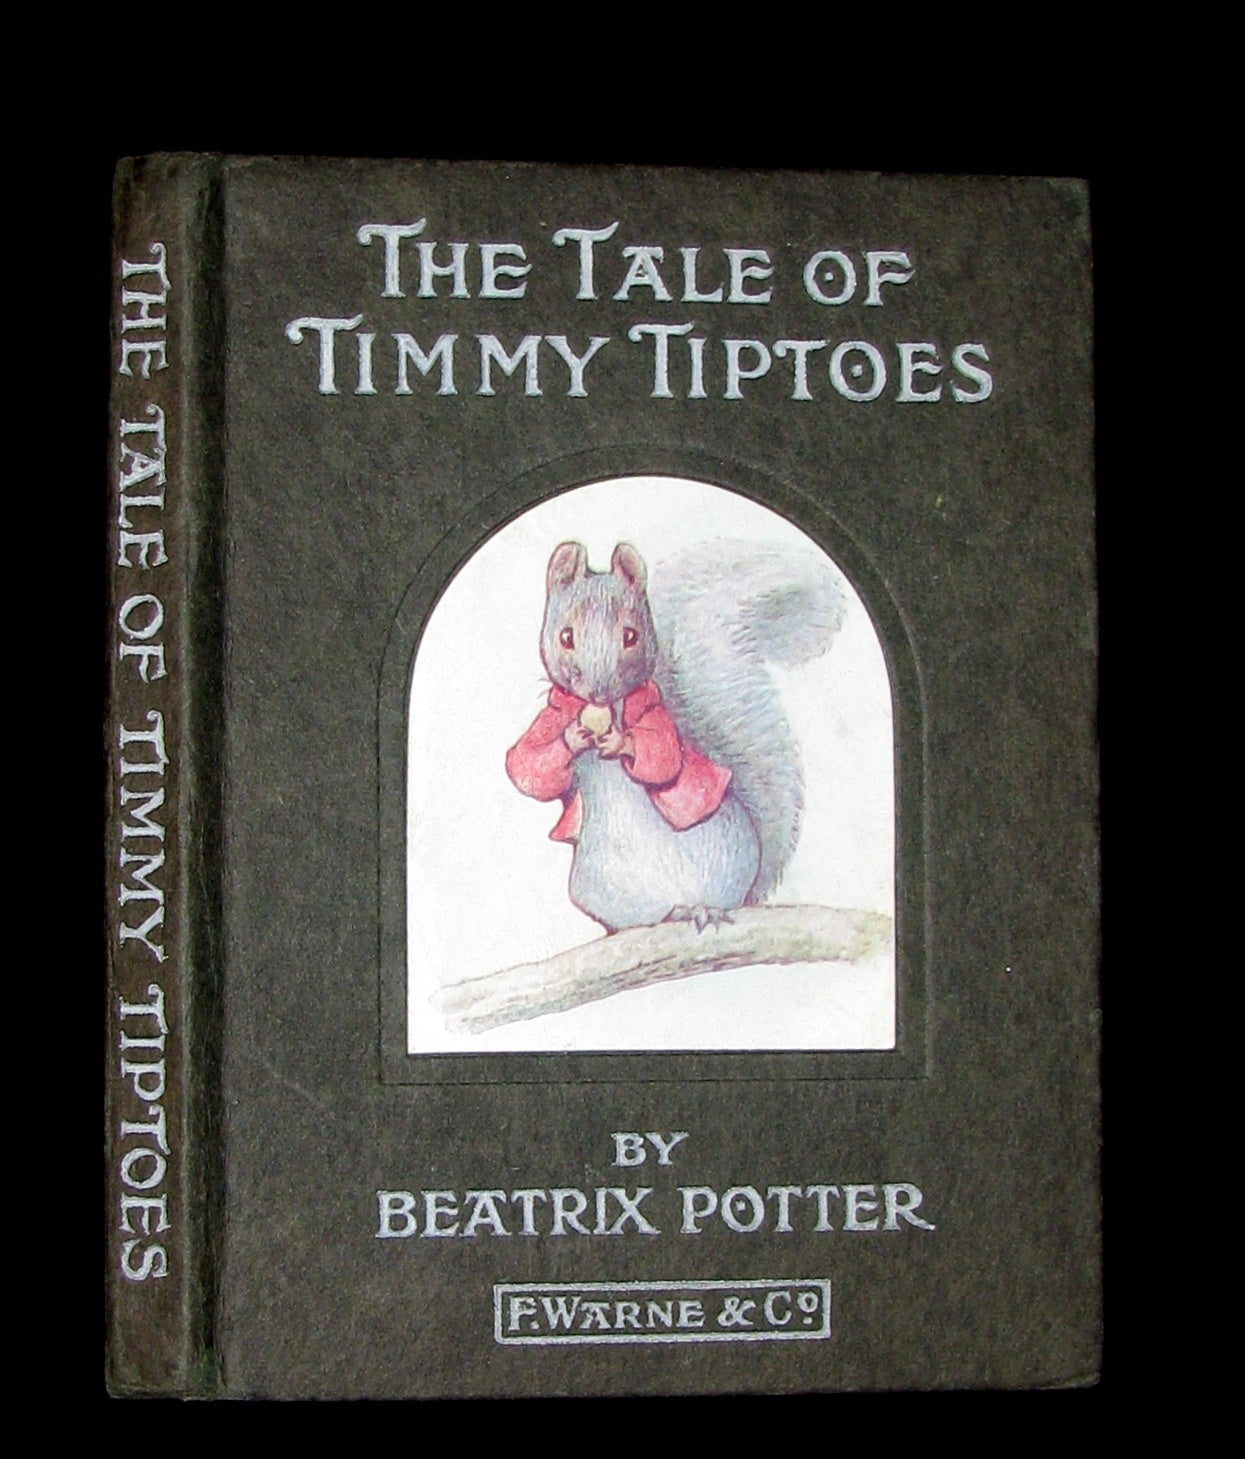 1911 Rare Early American Edition - Beatrix Potter  - THE TALE OF TIMMY TIPTOES